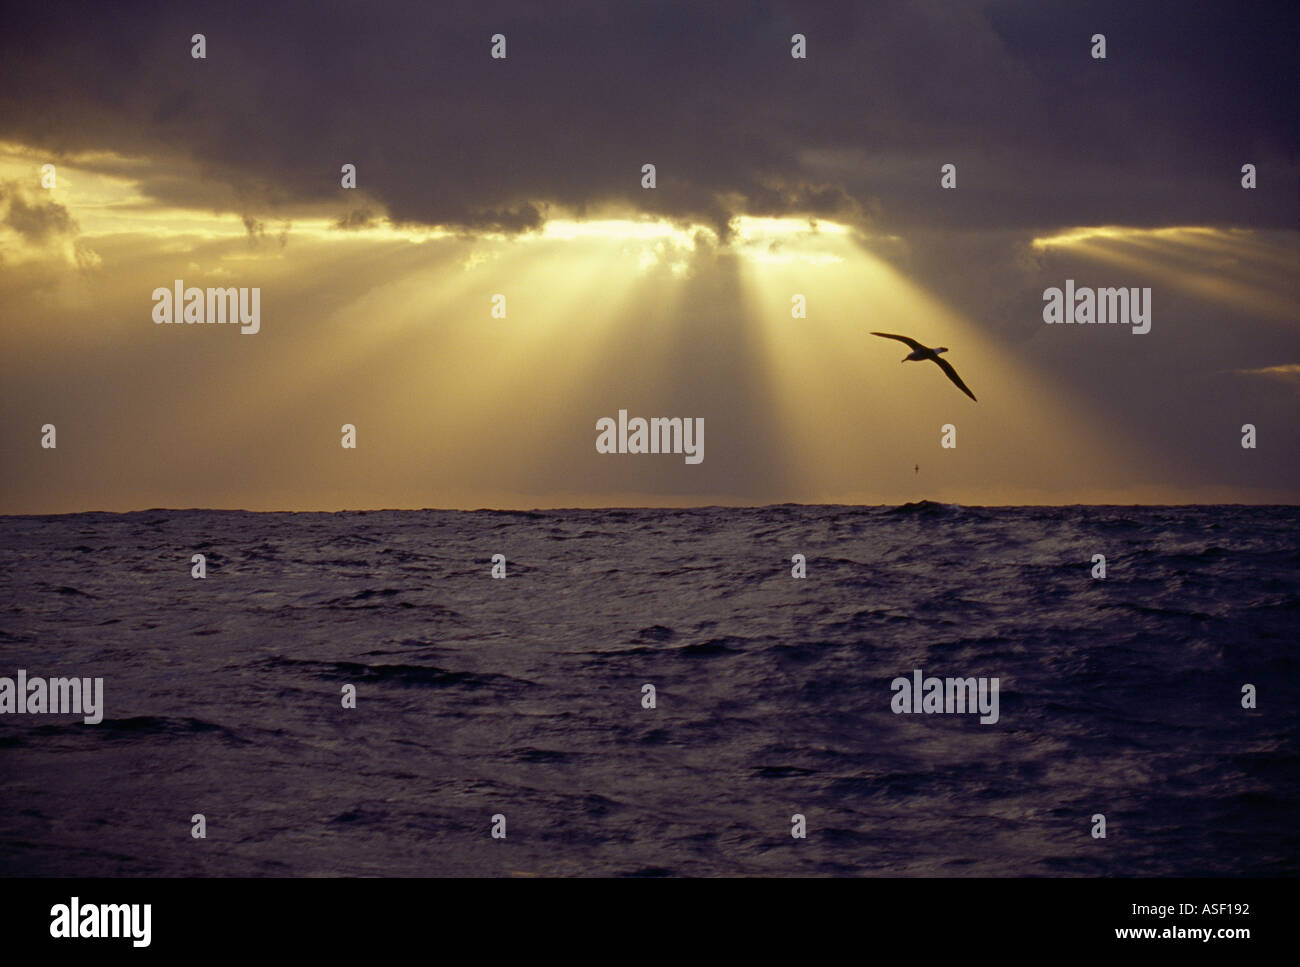 Albatross soaring over open ocean Southern Ocean Sunbeams sunrays crepuscular rays Godbeams Ropes of Maui - Stock Image